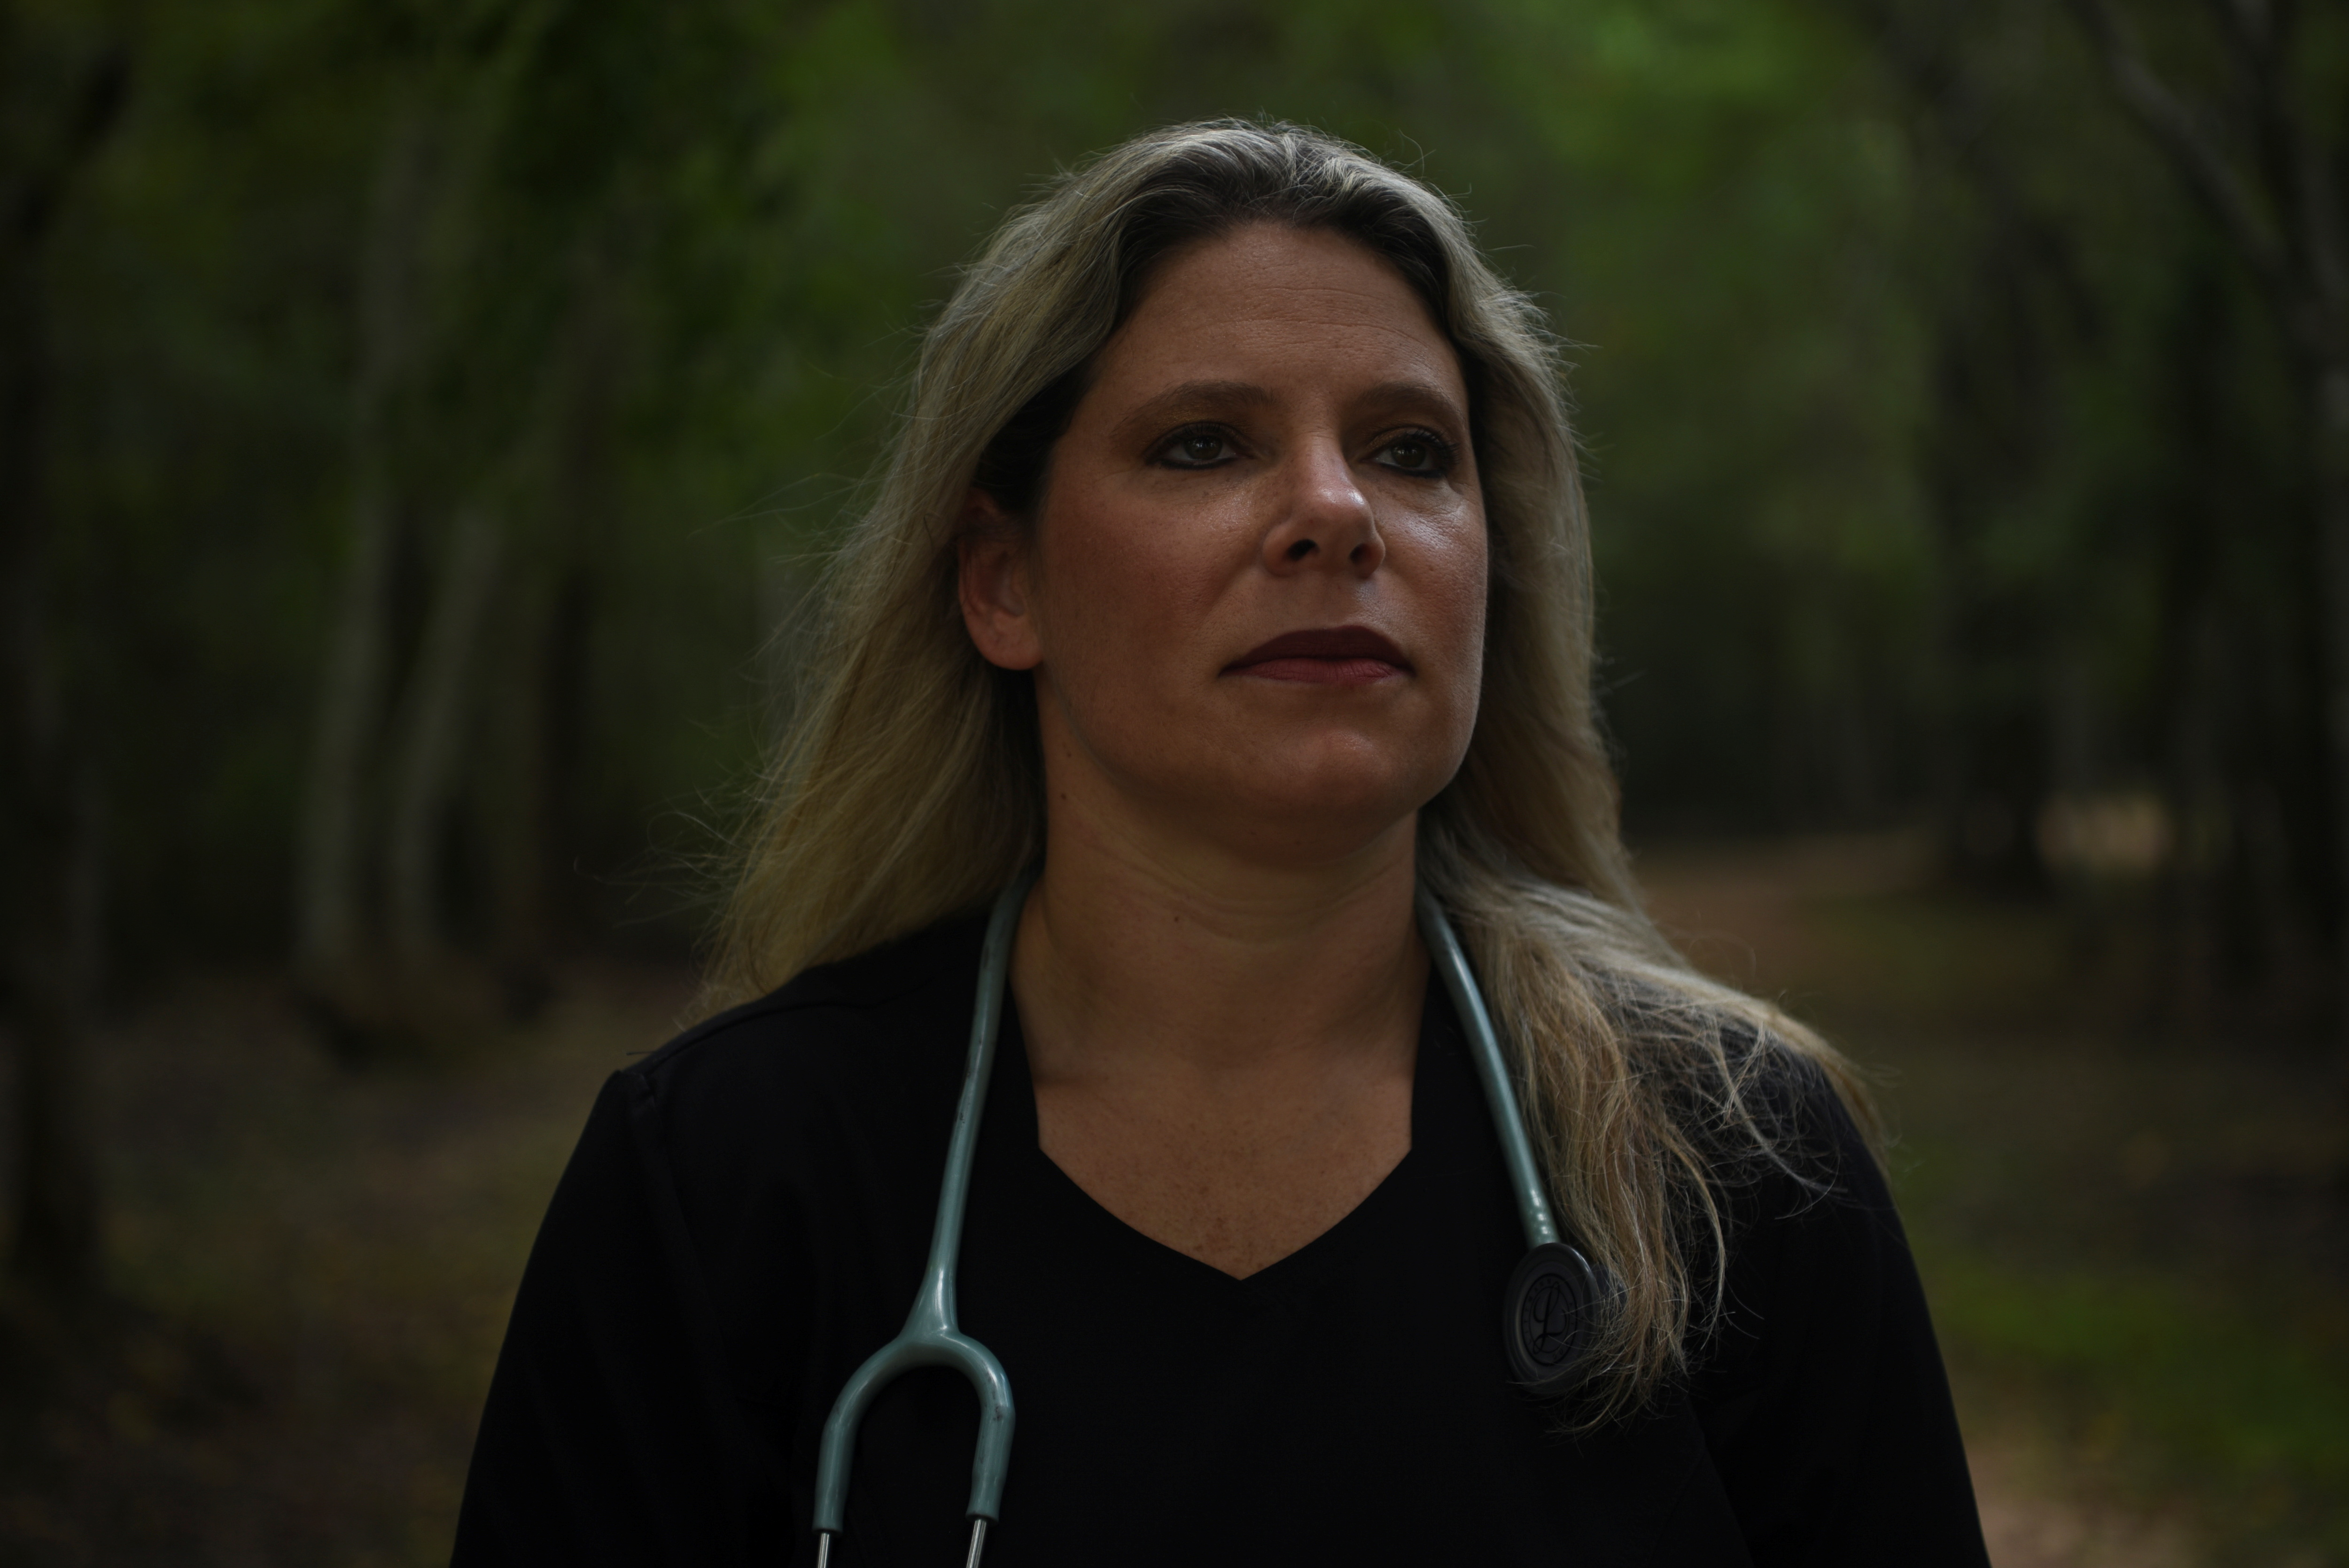 Jennifer Bridges, 39, an RN who was fired from her job after refusing the coronavirus disease (COVID-19) vaccine, poses for a portrait at Jenkins Park in Baytown, Texas, U.S., September 30, 2021. Picture taken September 30, 2021.  REUTERS/Callaghan O'Hare